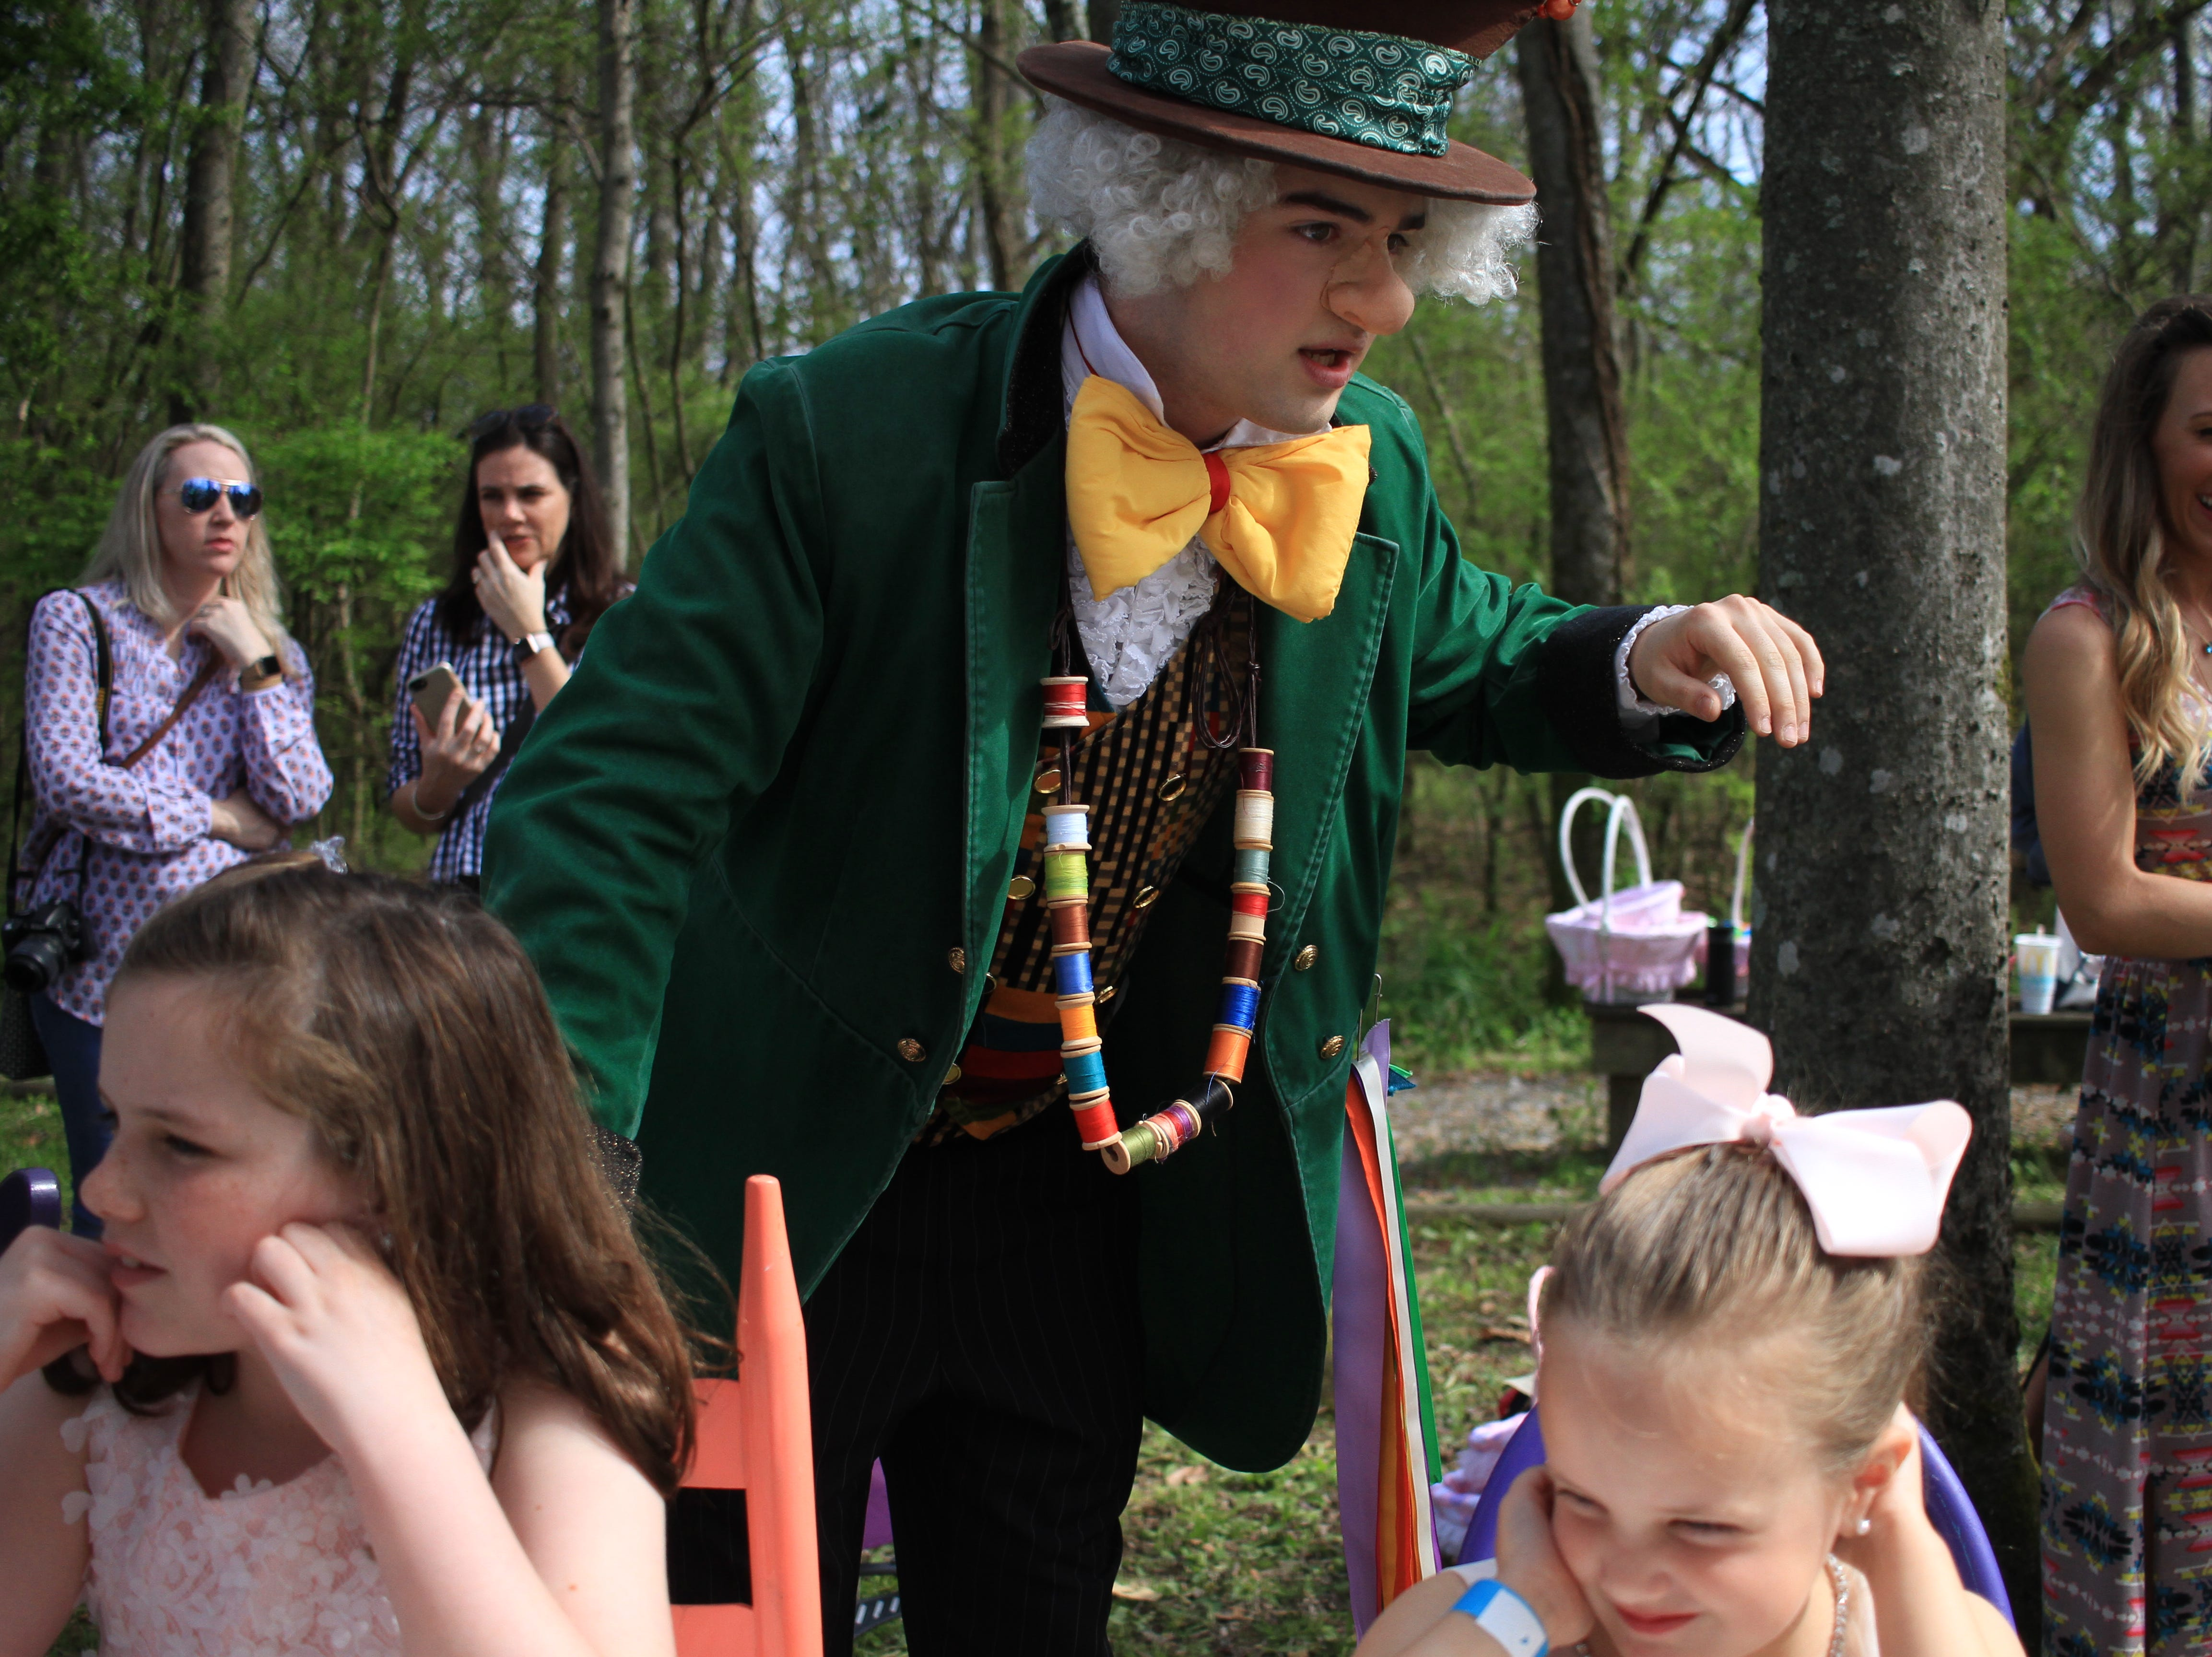 Guests enjoy the day at the Mad Hatter Tea Party in the Rock Castle Woodlands on Saturday, April 6, 2019.